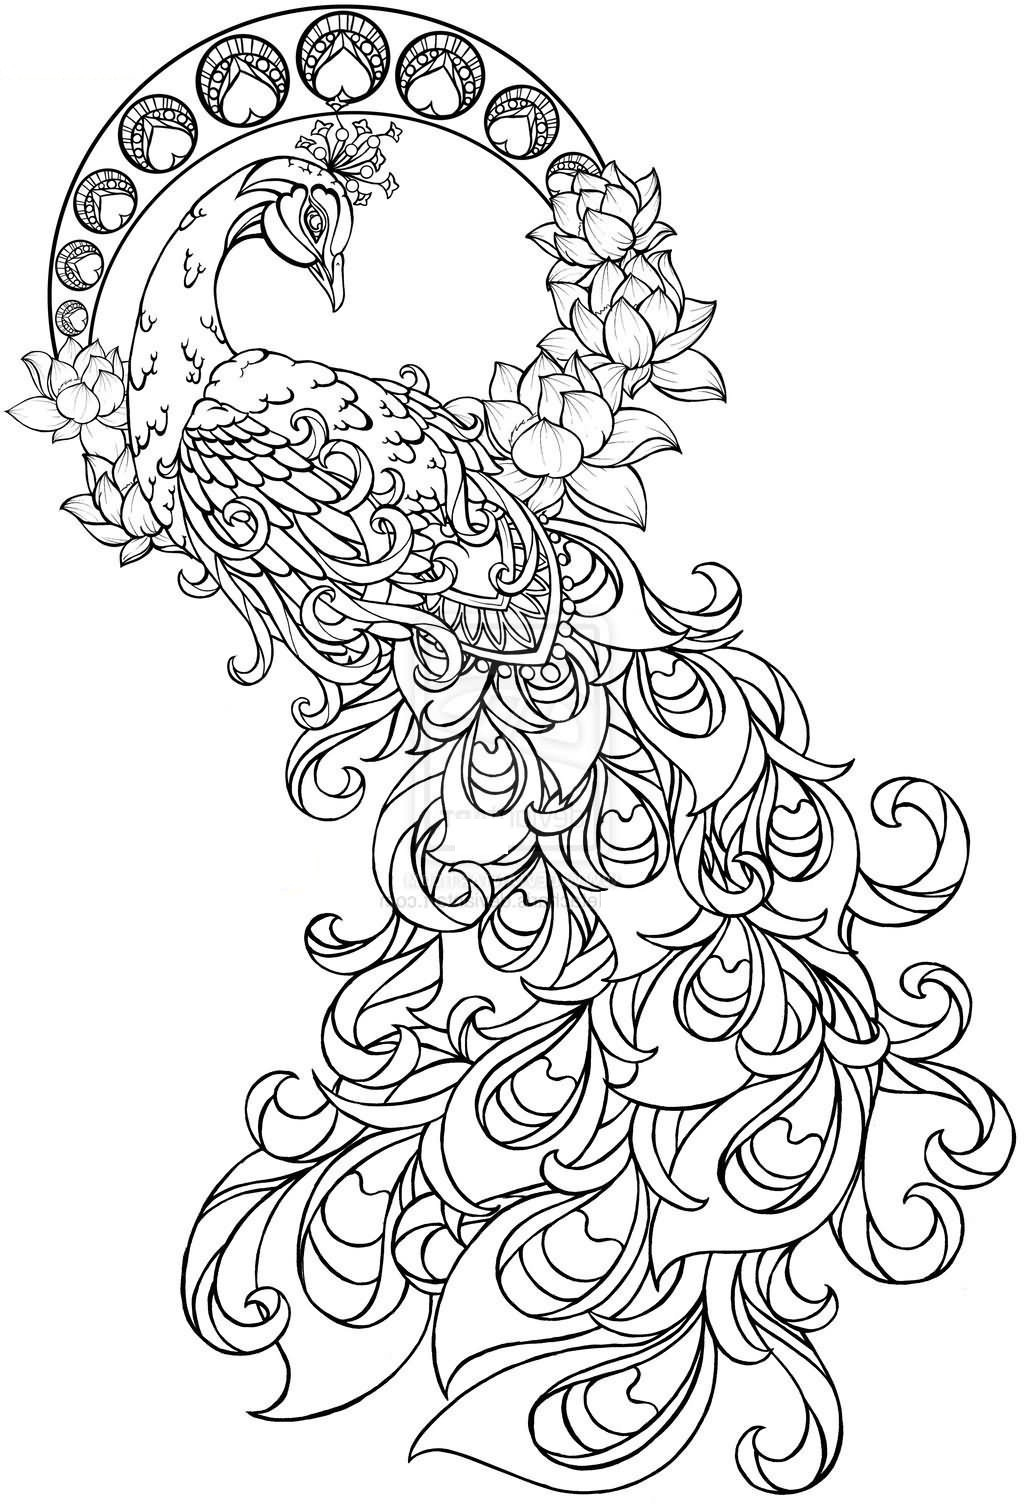 Peacock Color Page Coloring Coloring Pin Elle On Color Me Crazy Adult Pages And